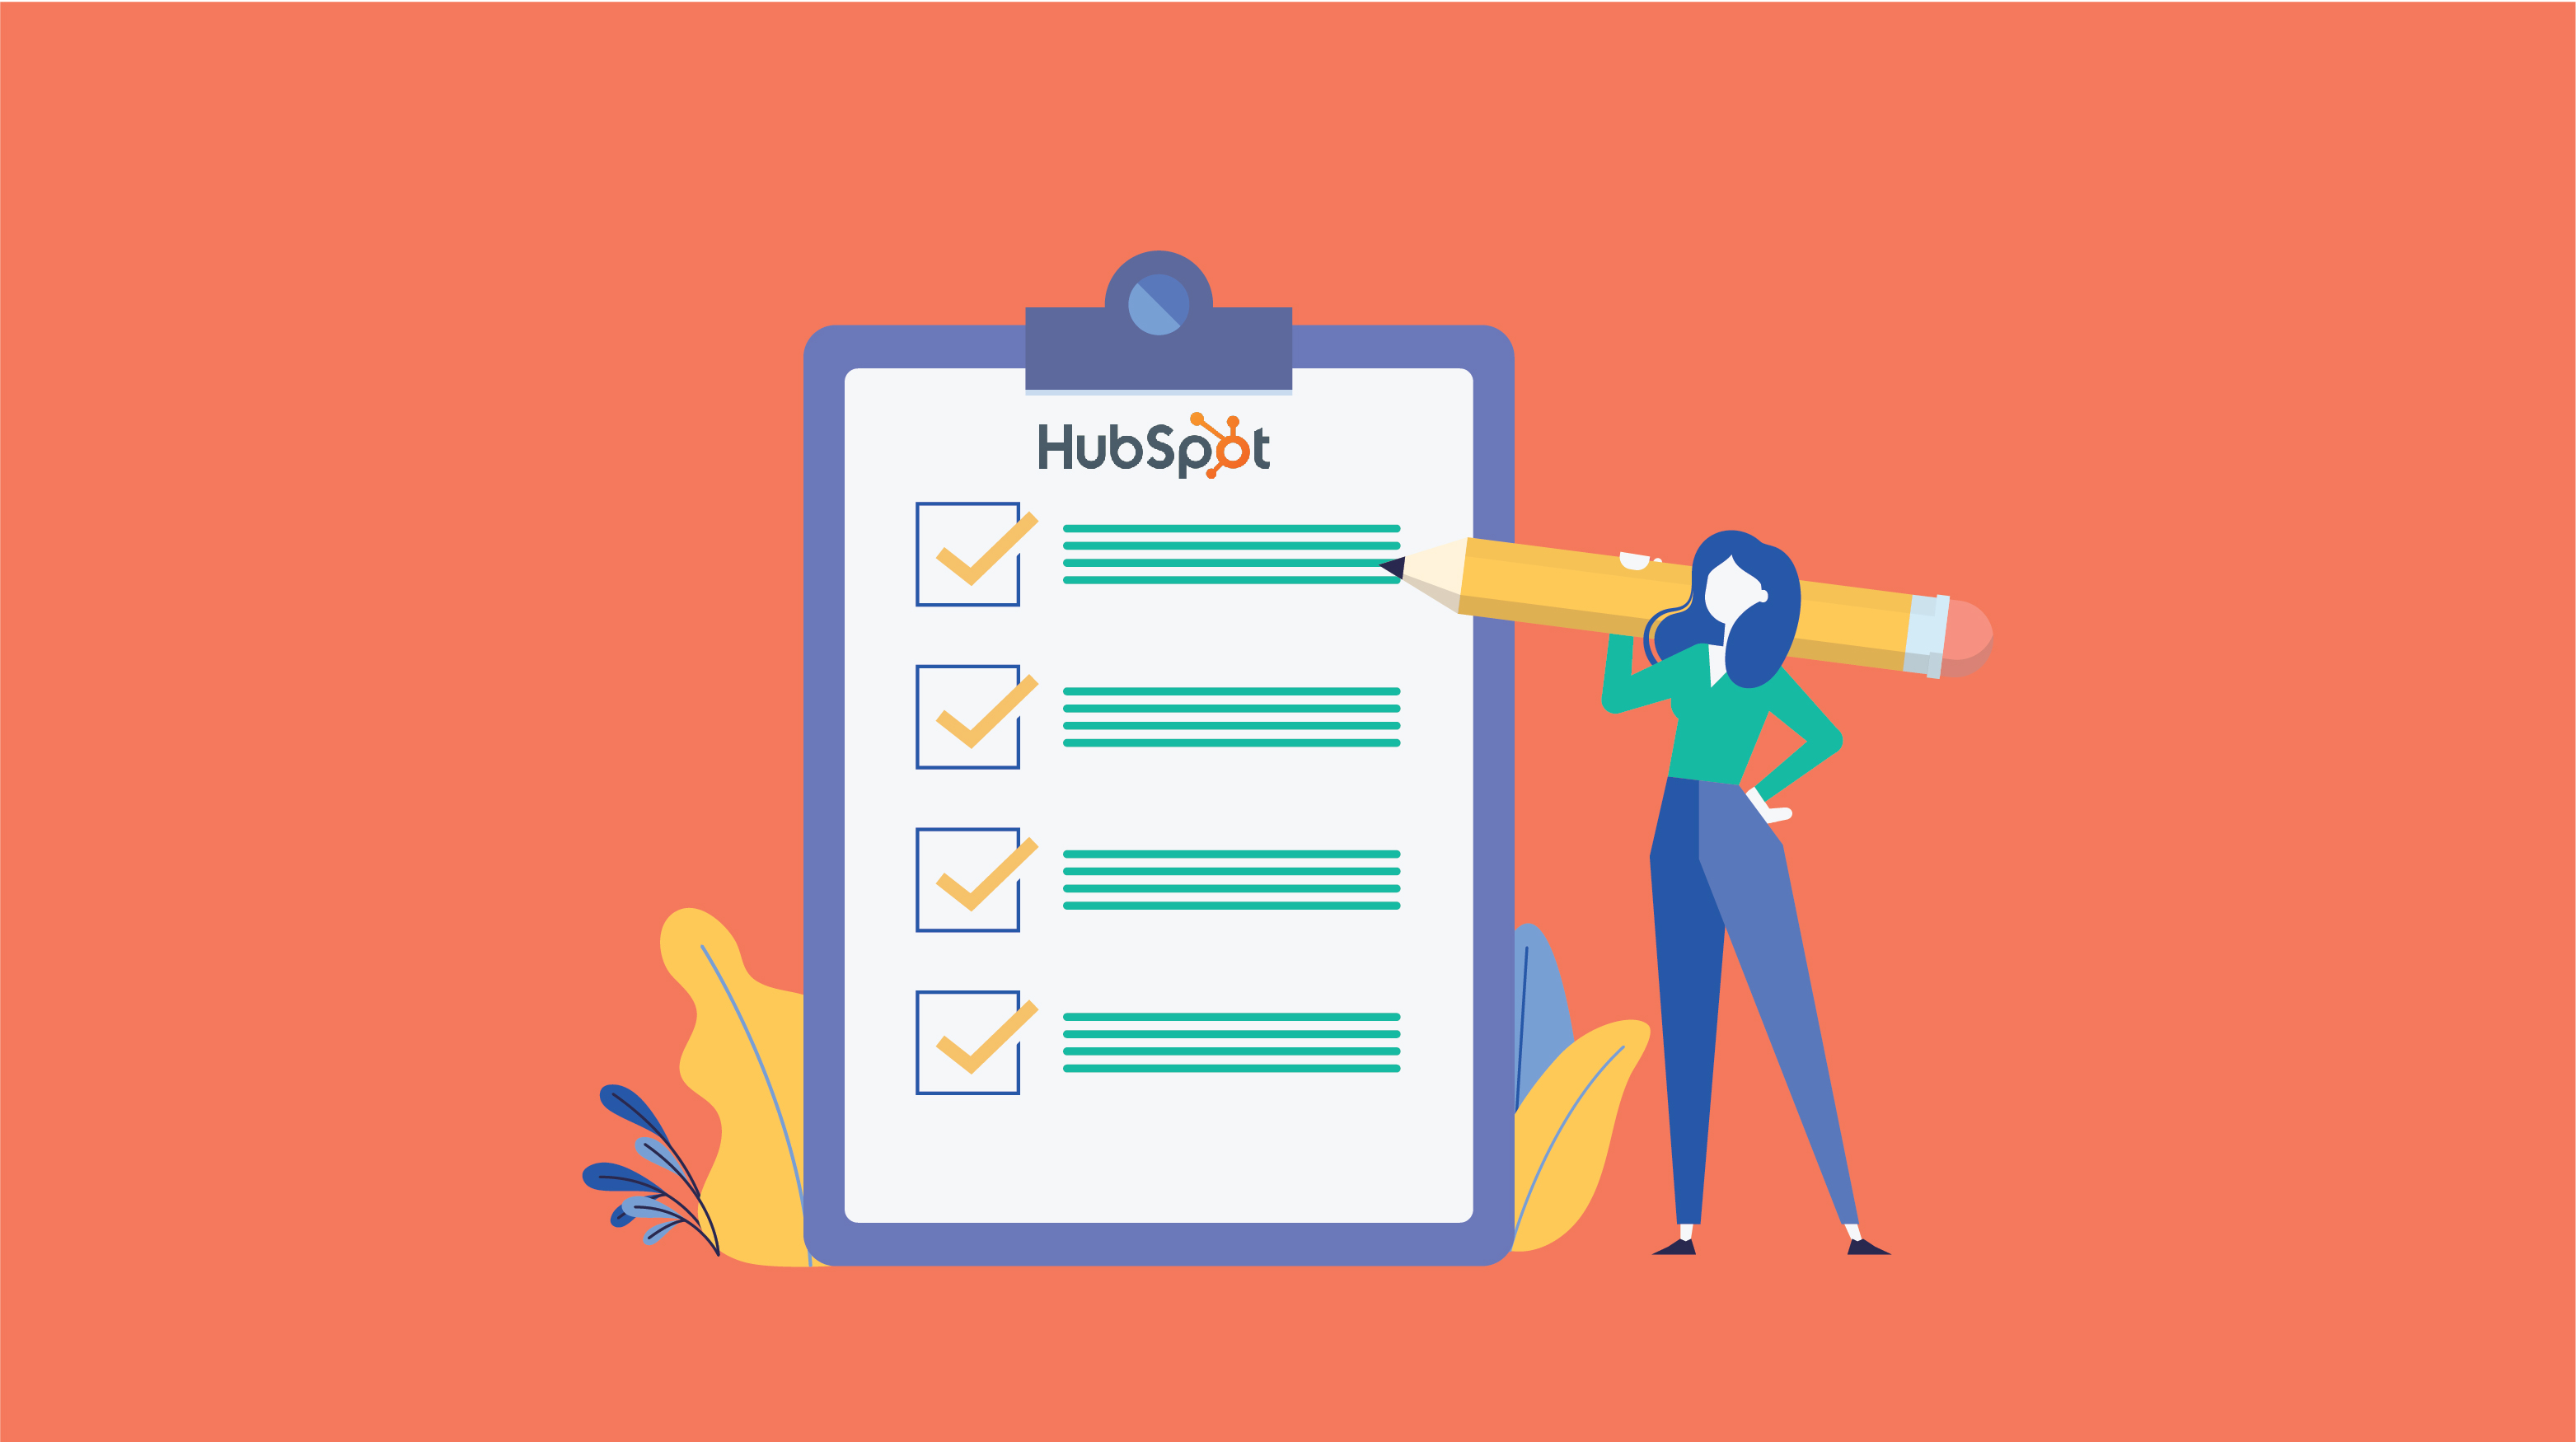 Can You Customize HubSpot forms? If Yes, How?